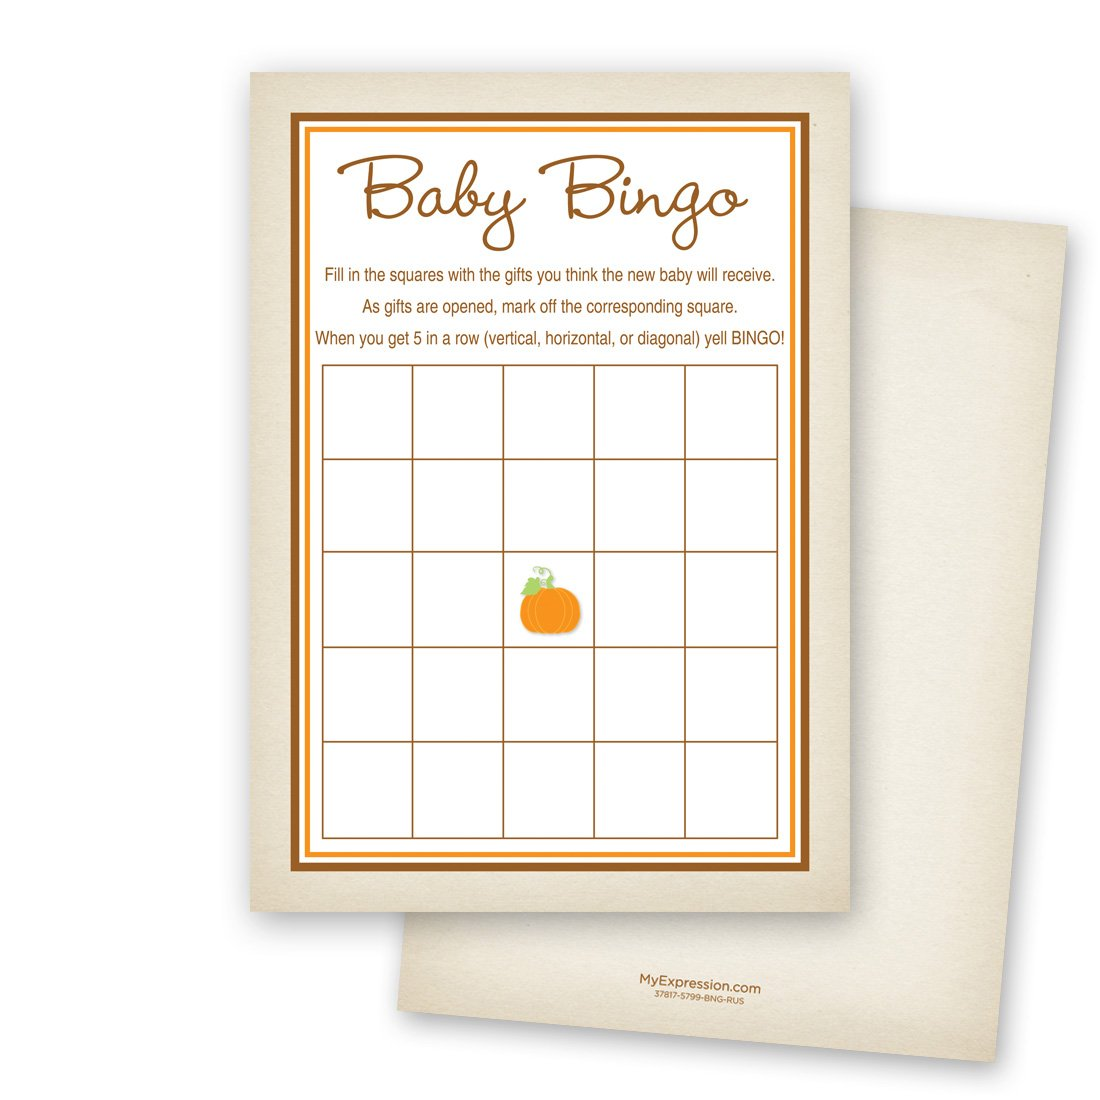 MyExpression.com 24 Little Pumpkin Rustic Border Baby Bingo Cards